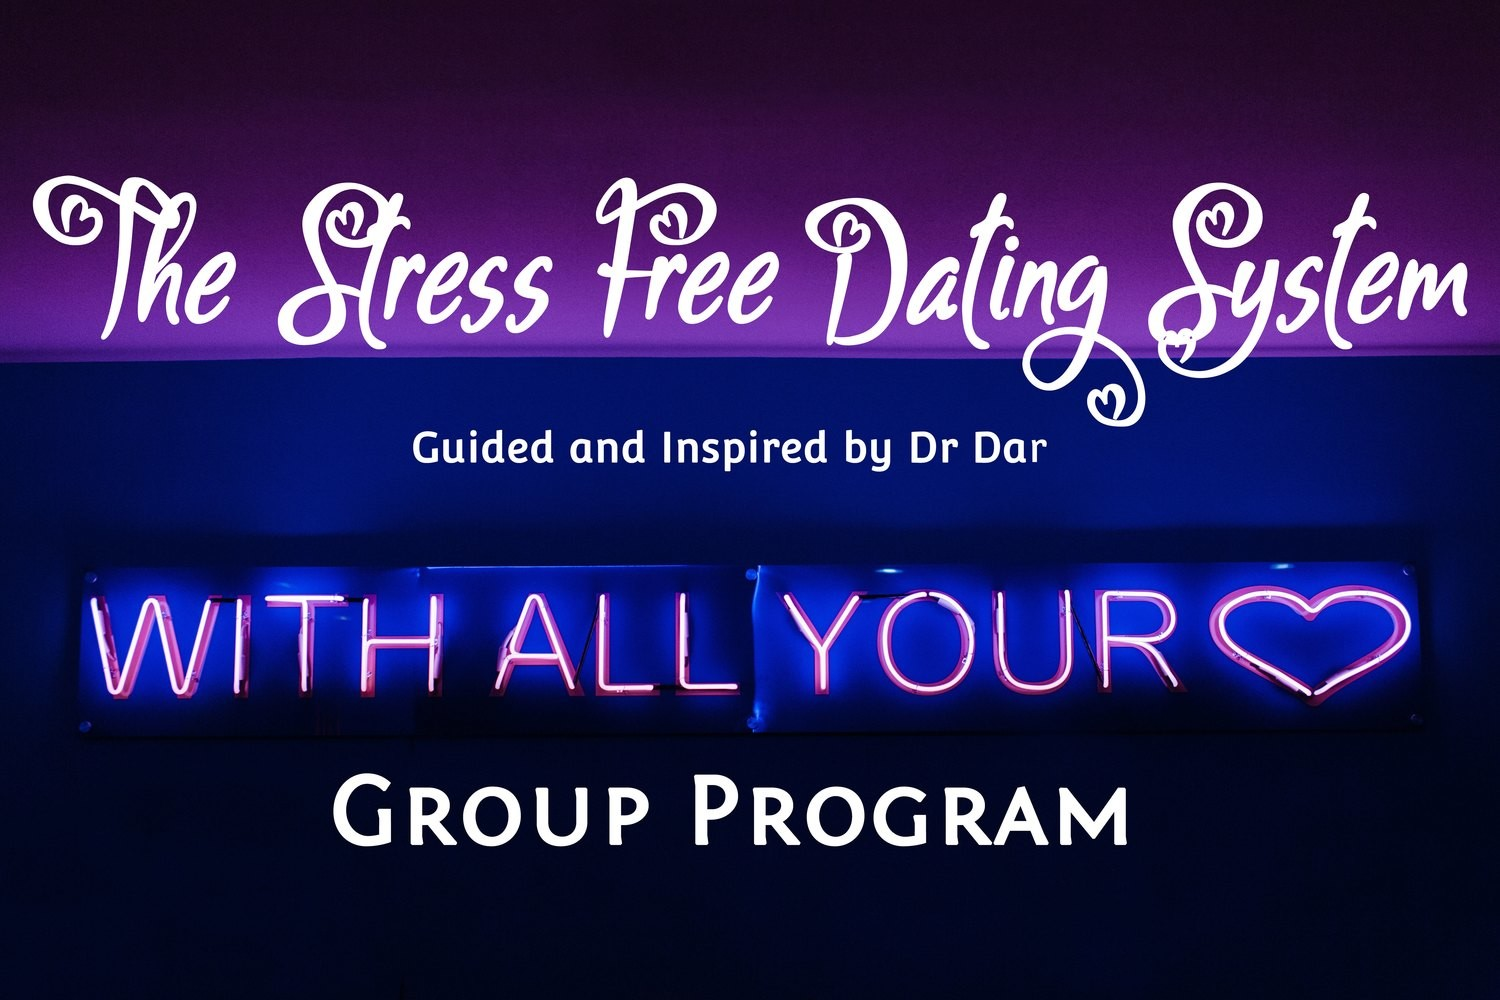 The Stress Free Dating System - Group Program